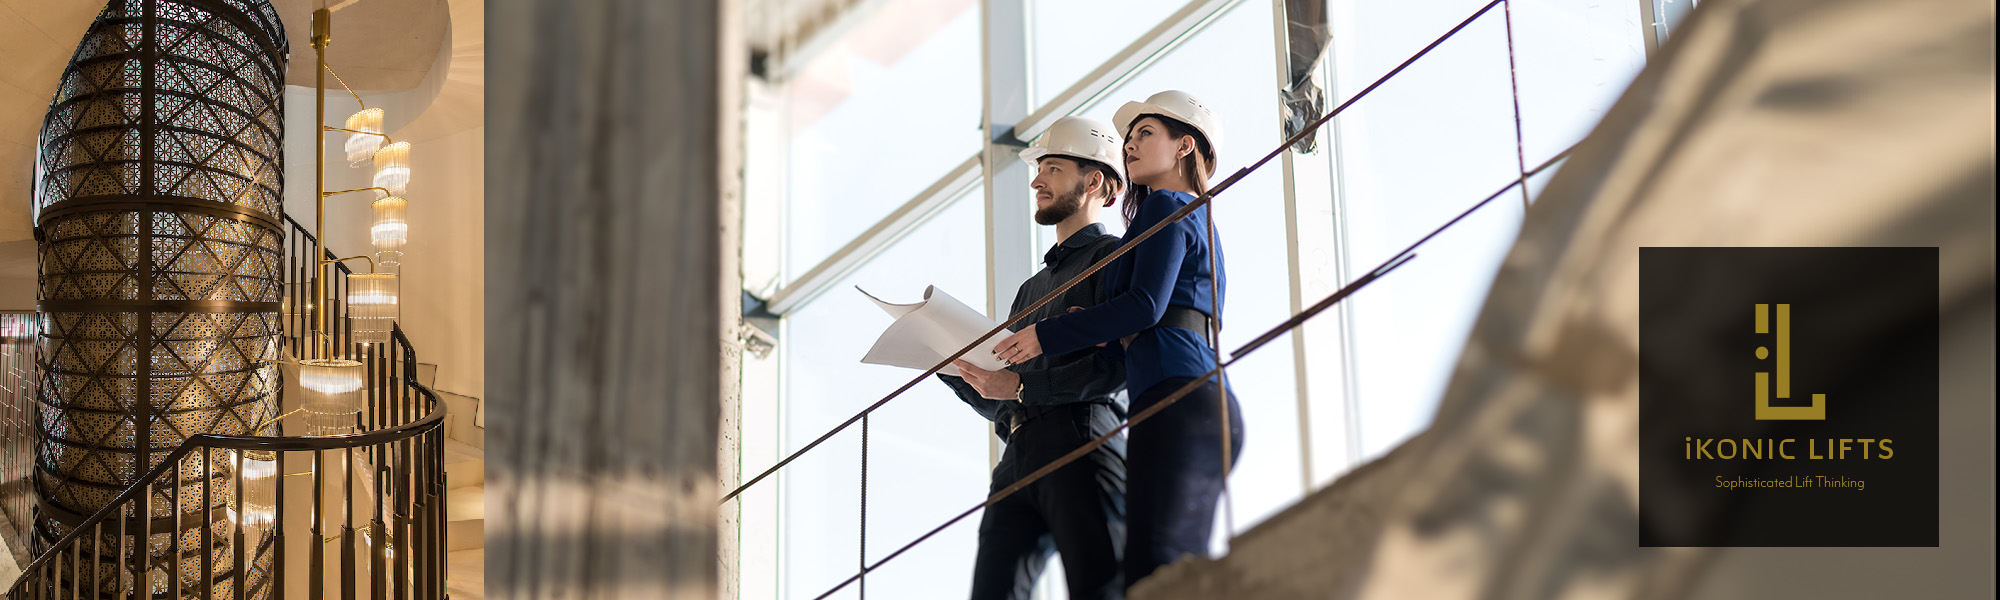 Two engineer-architects, a man and a woman discuss a constructio